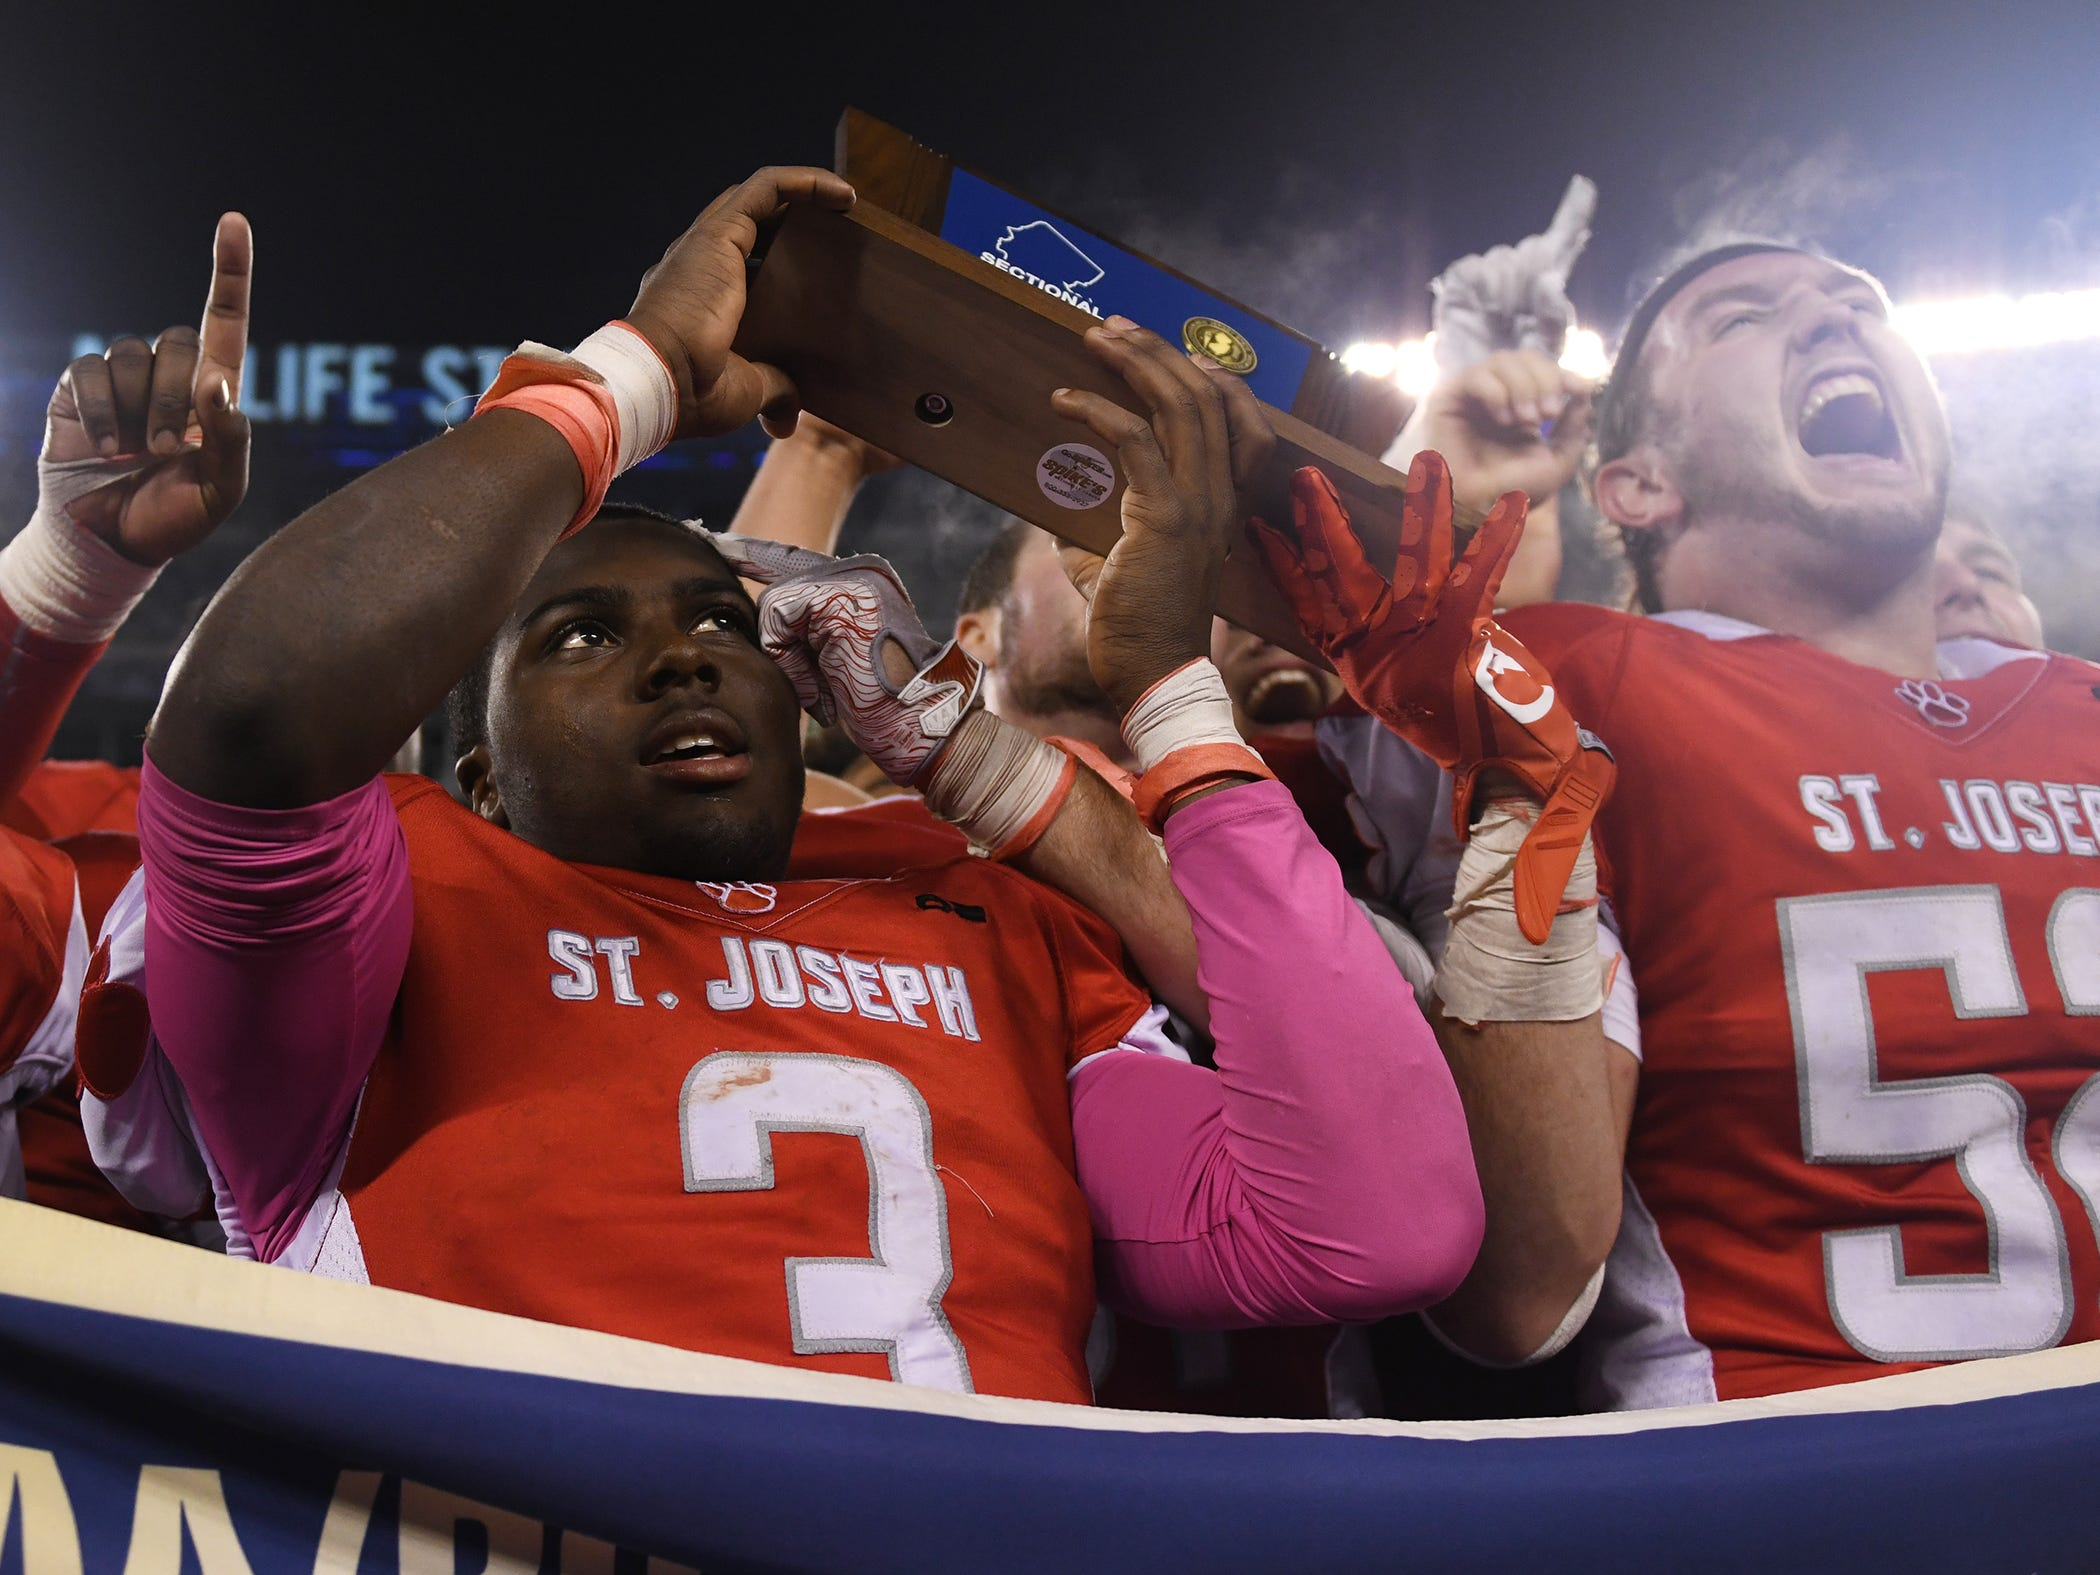 St. Joseph's Jada Byers raises the NJSIAA Non-Public 2 state championship trophy after a 41-22 win over Holy Spirit at MetLife Stadium on Friday, November 30, 2018.